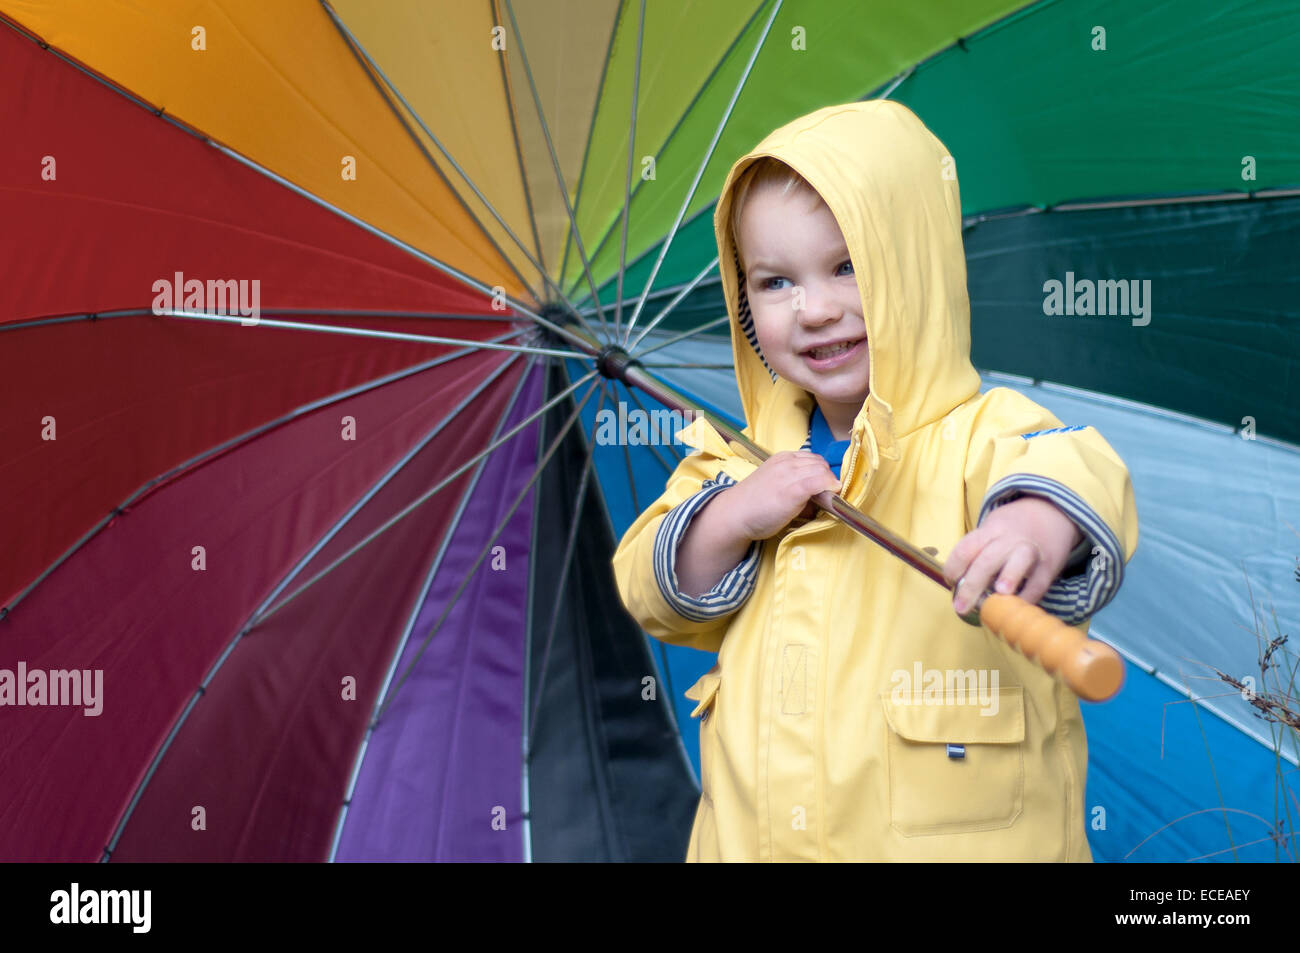 Boy in a rain coat holding multi-colored umbrella Stock Photo